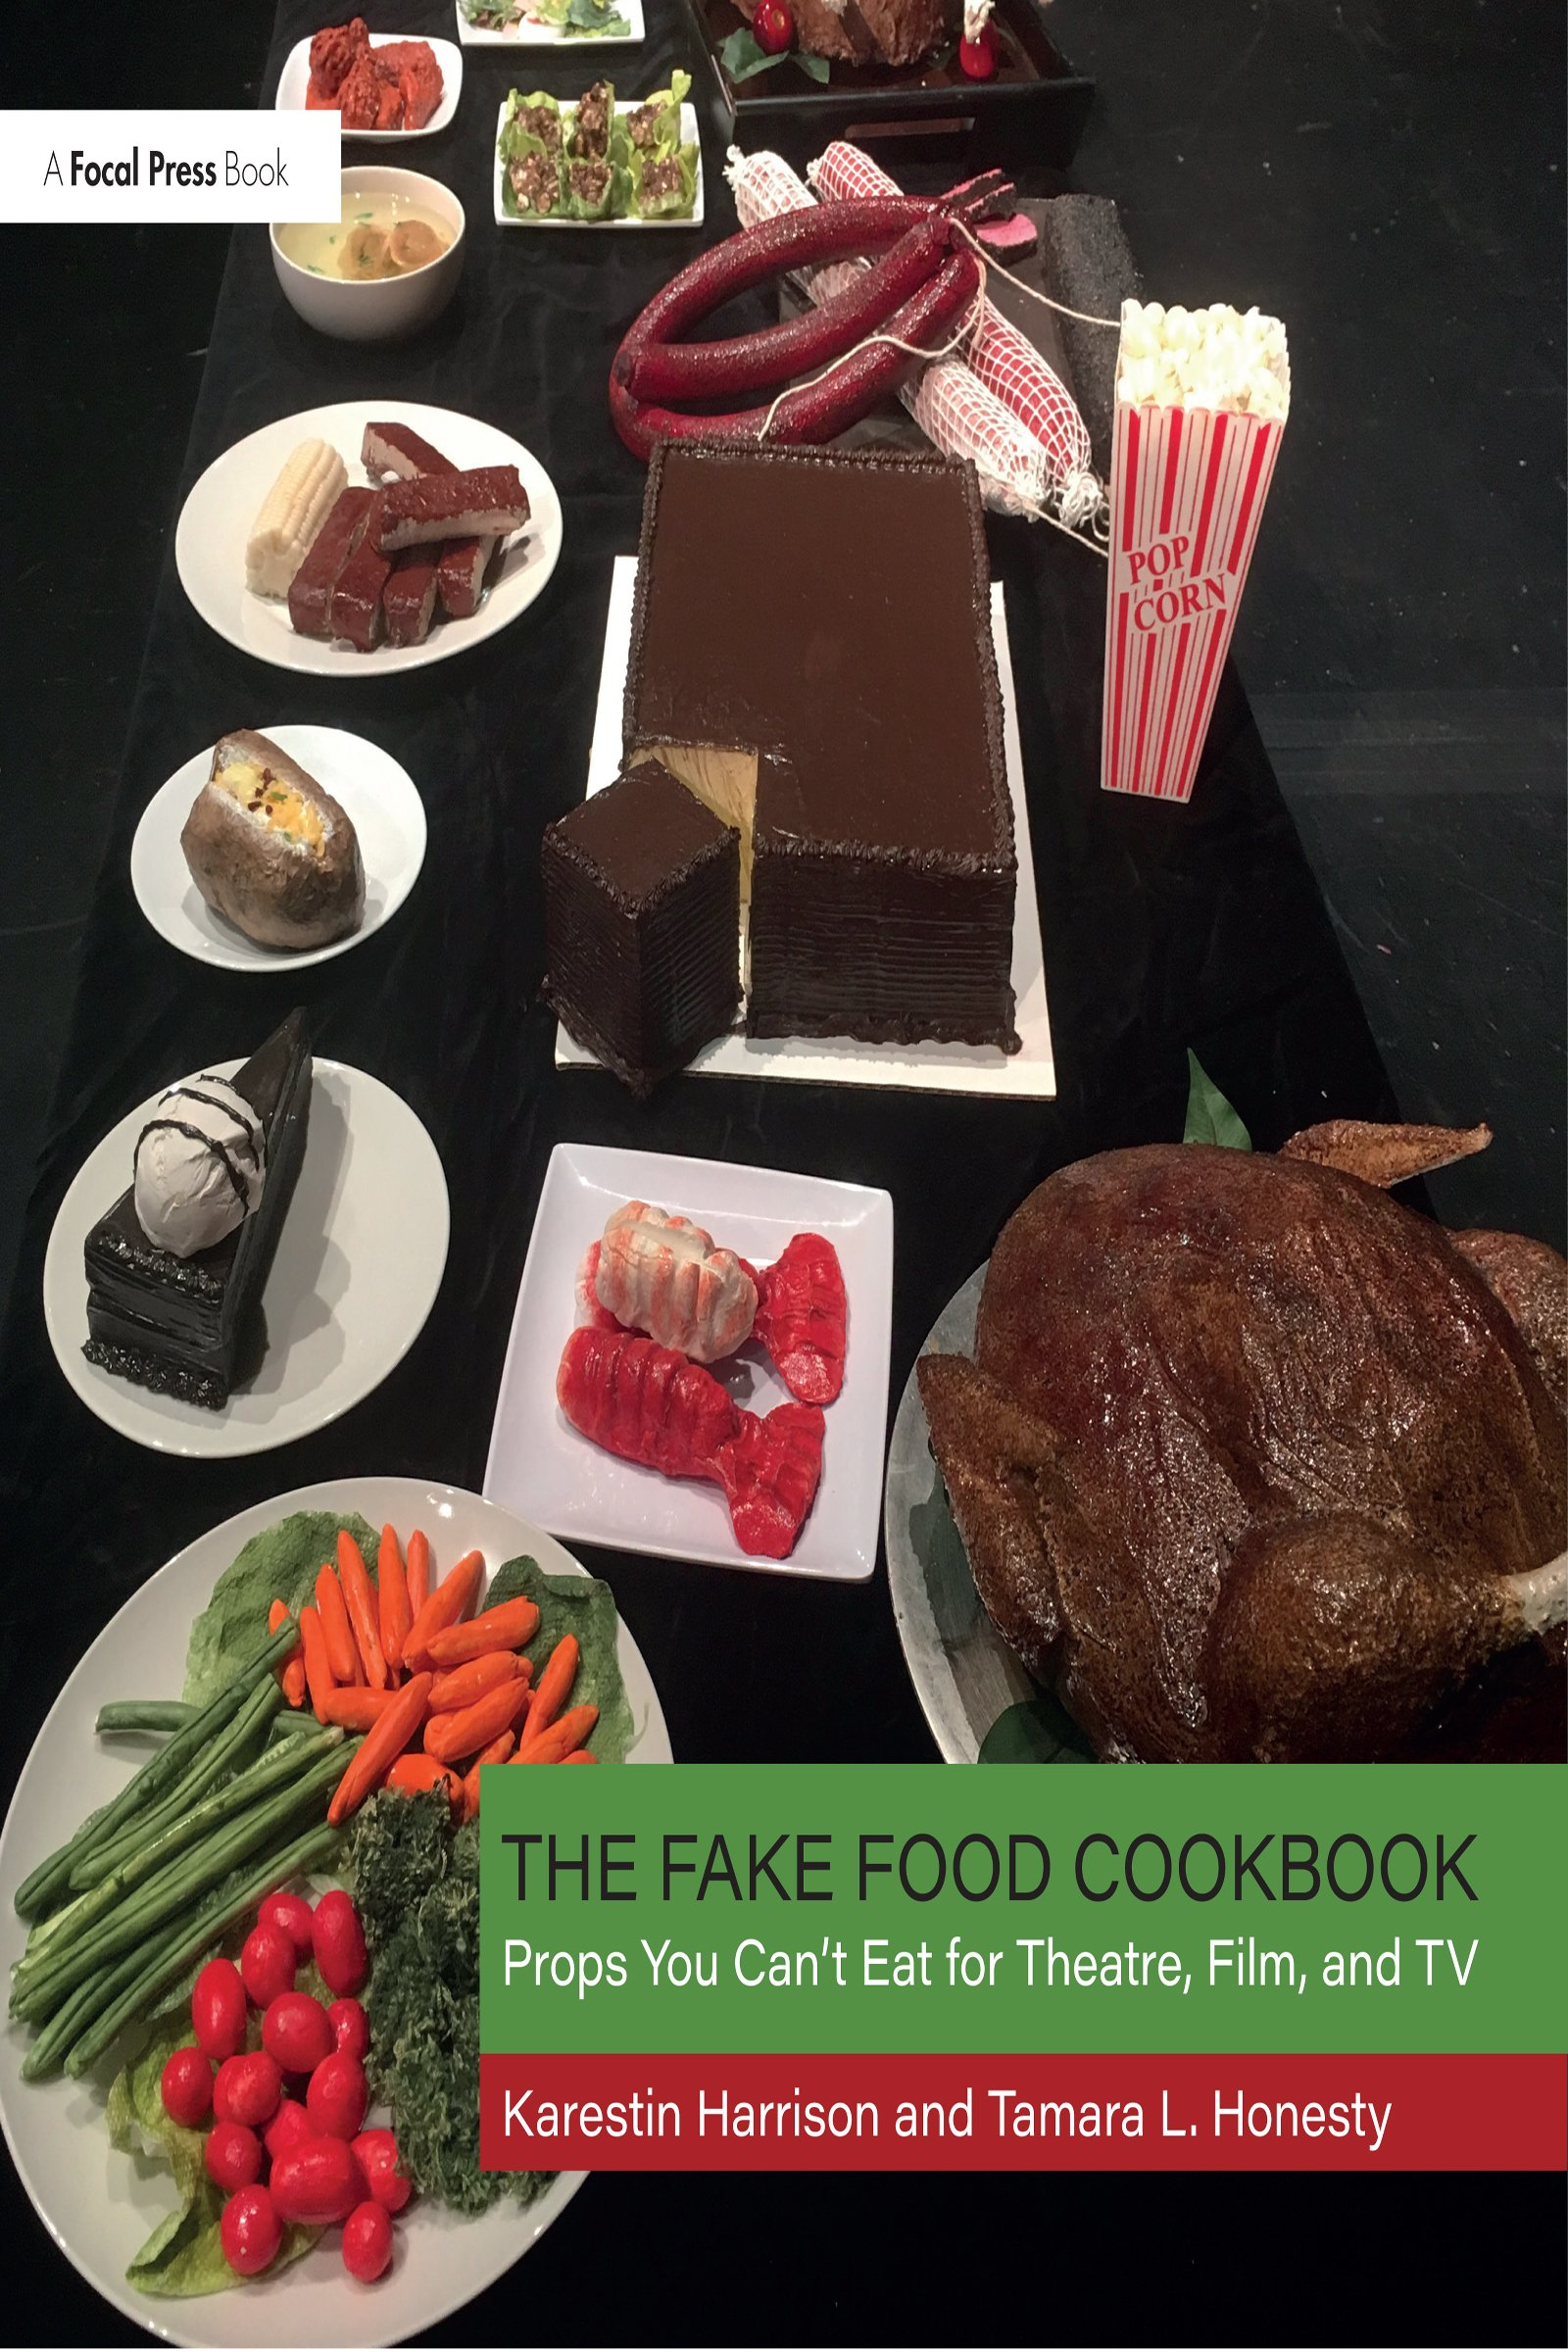 The Fake Food Cookbook